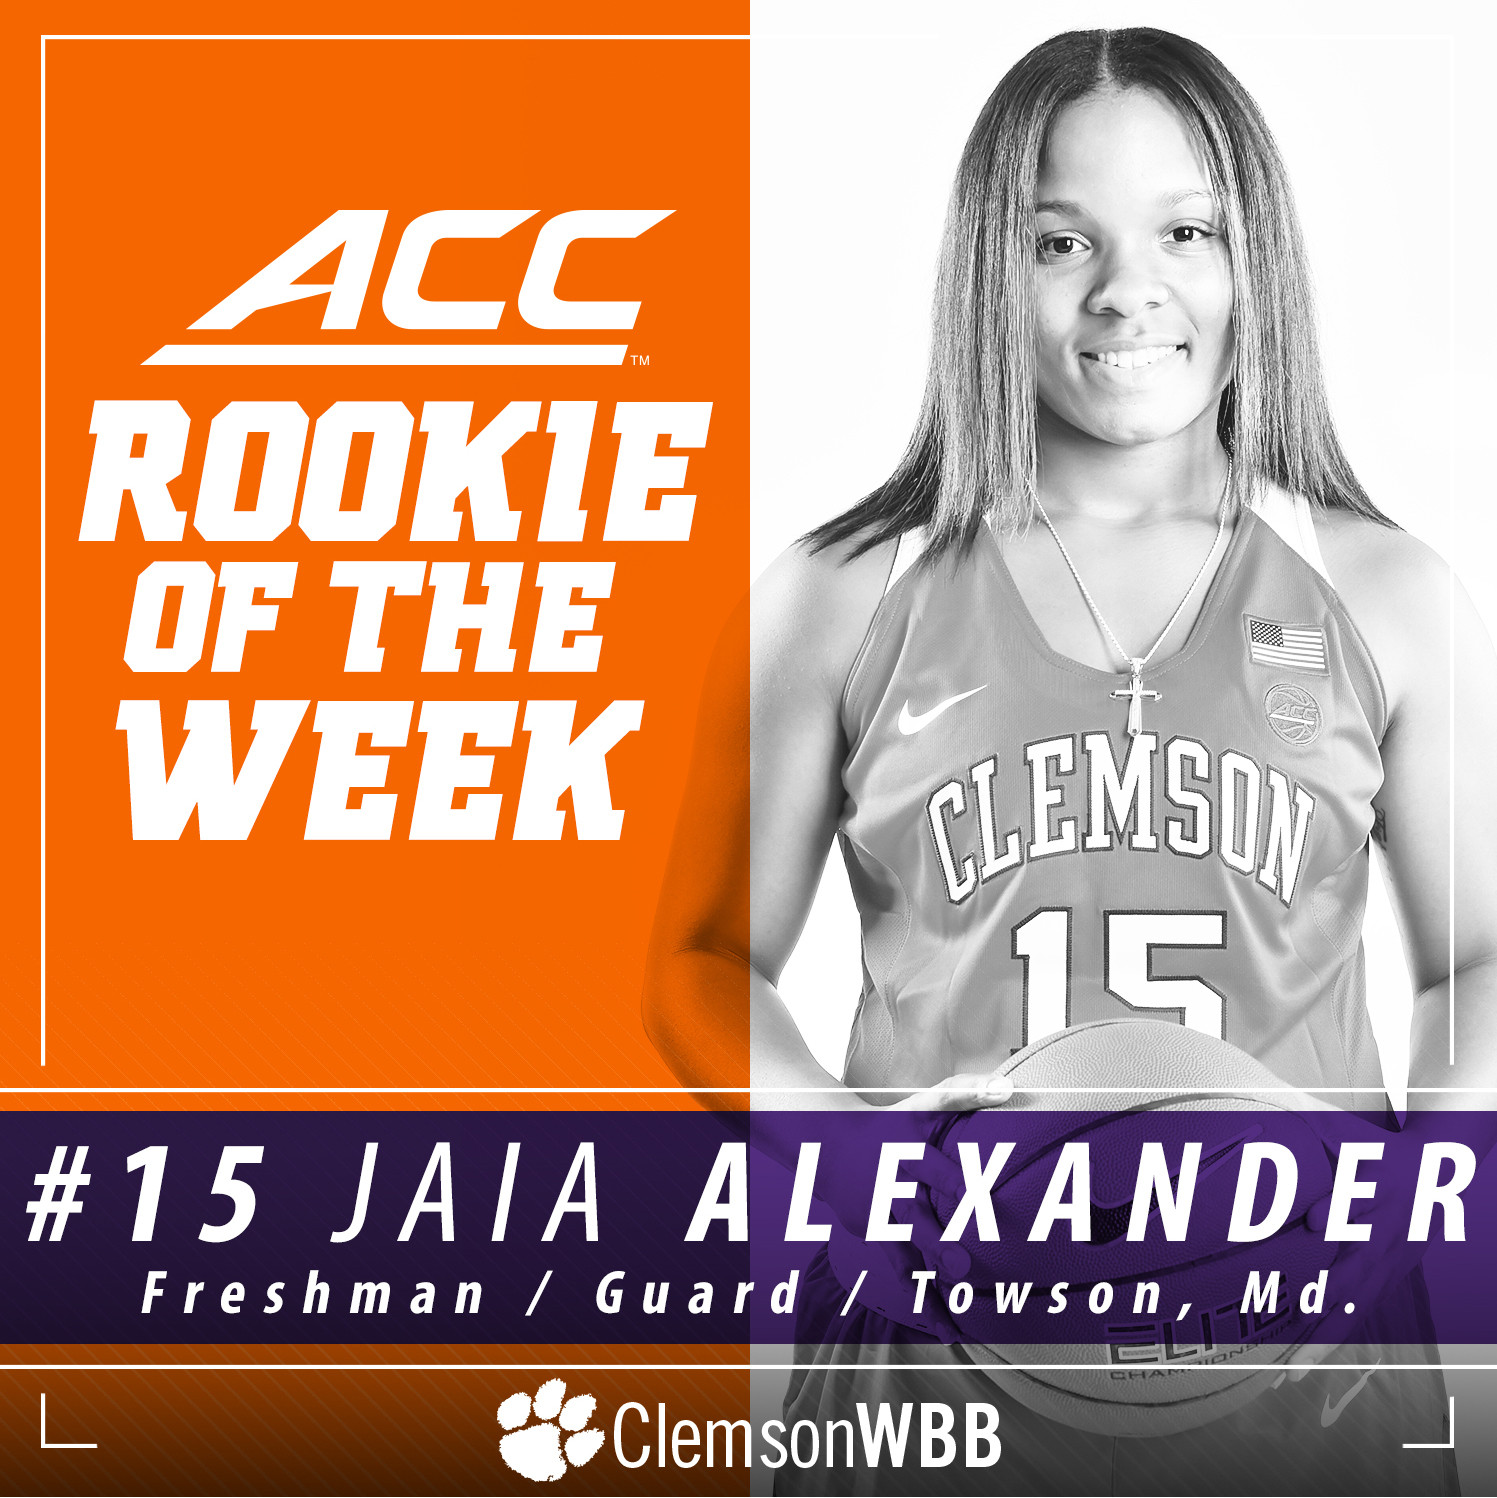 Jaia Alexander Named ACC Rookie of the Week